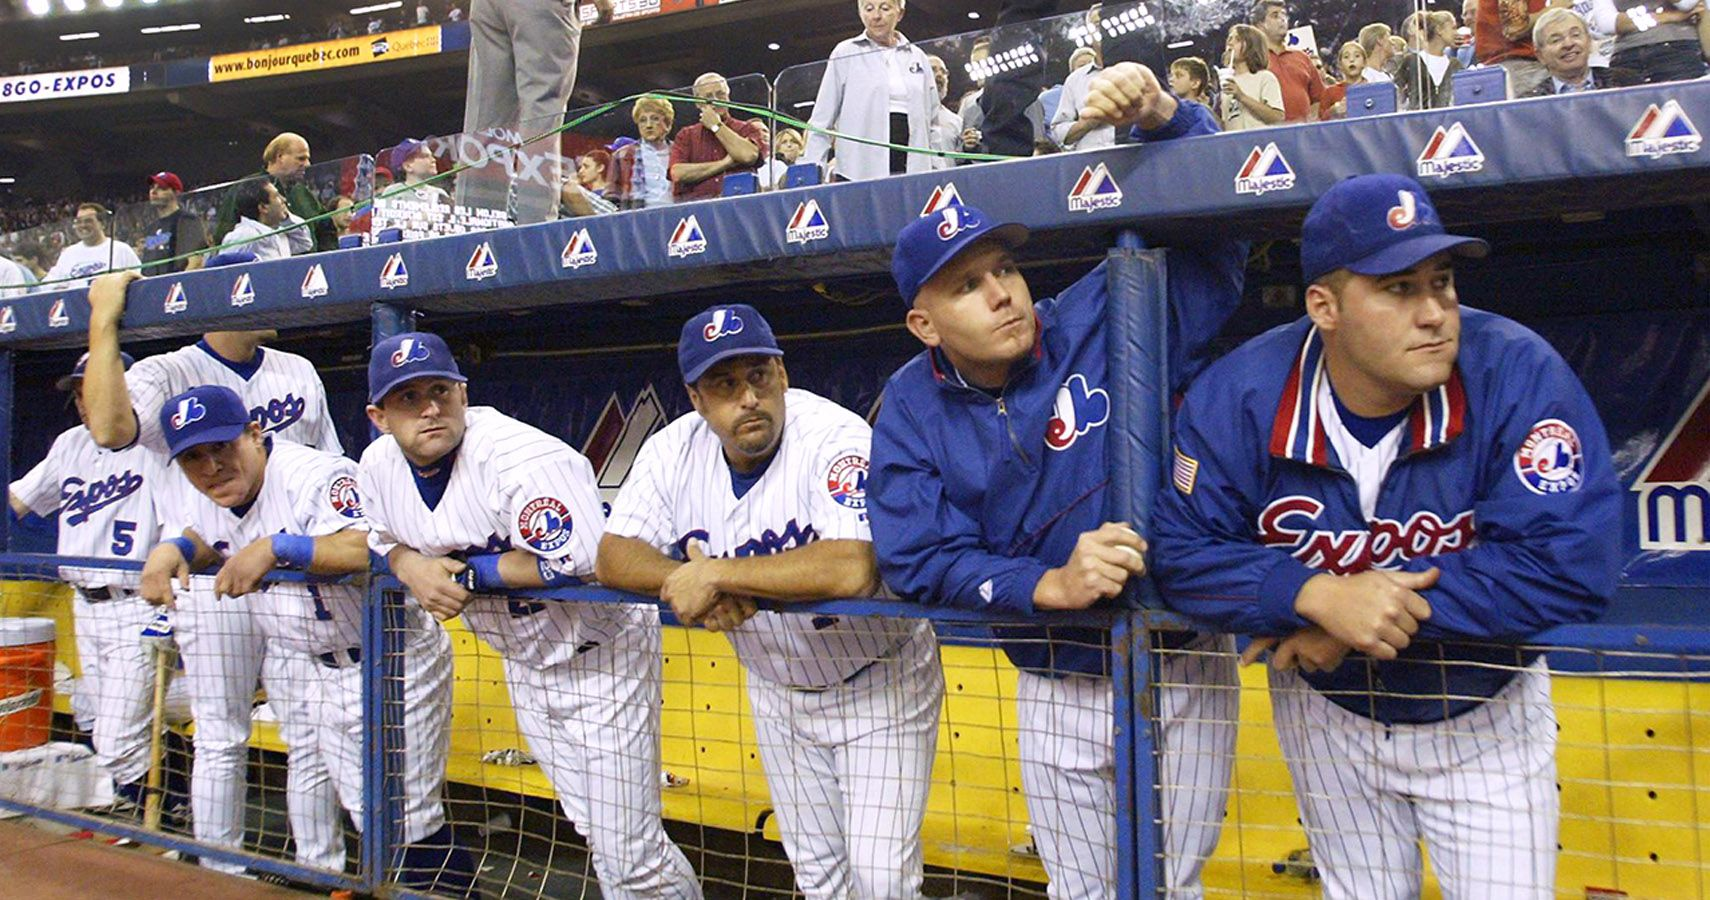 Members Of The Final Montreal Expos Roster: Where Are They Now?